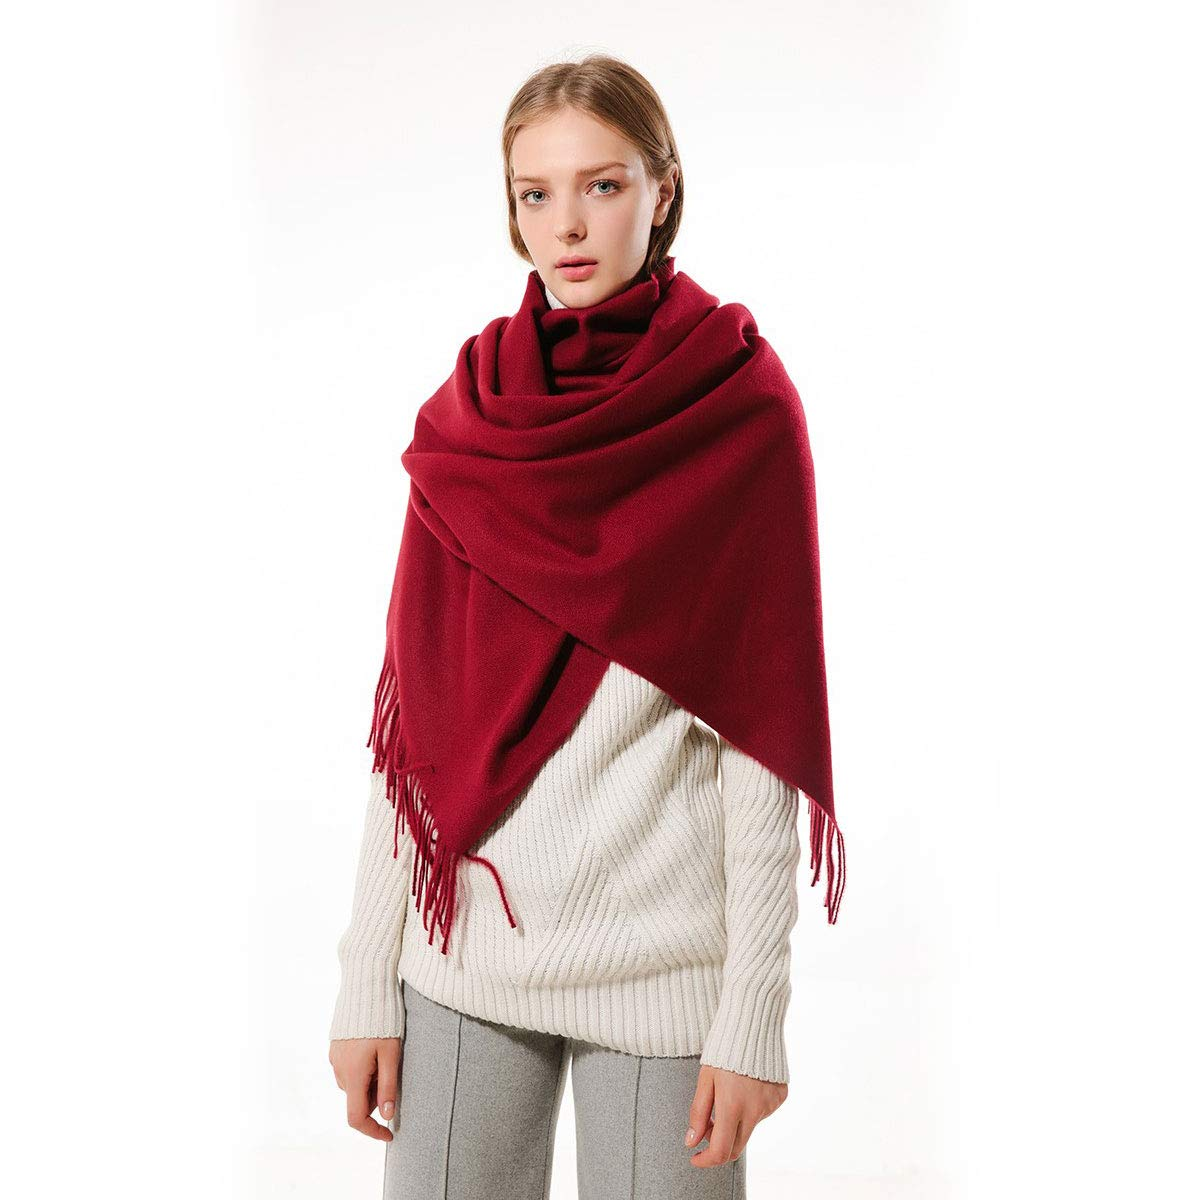 Women Soft Pashmina Wraps Shawls Stole Scarf - Large Size 78''x 28'' (Wine red)